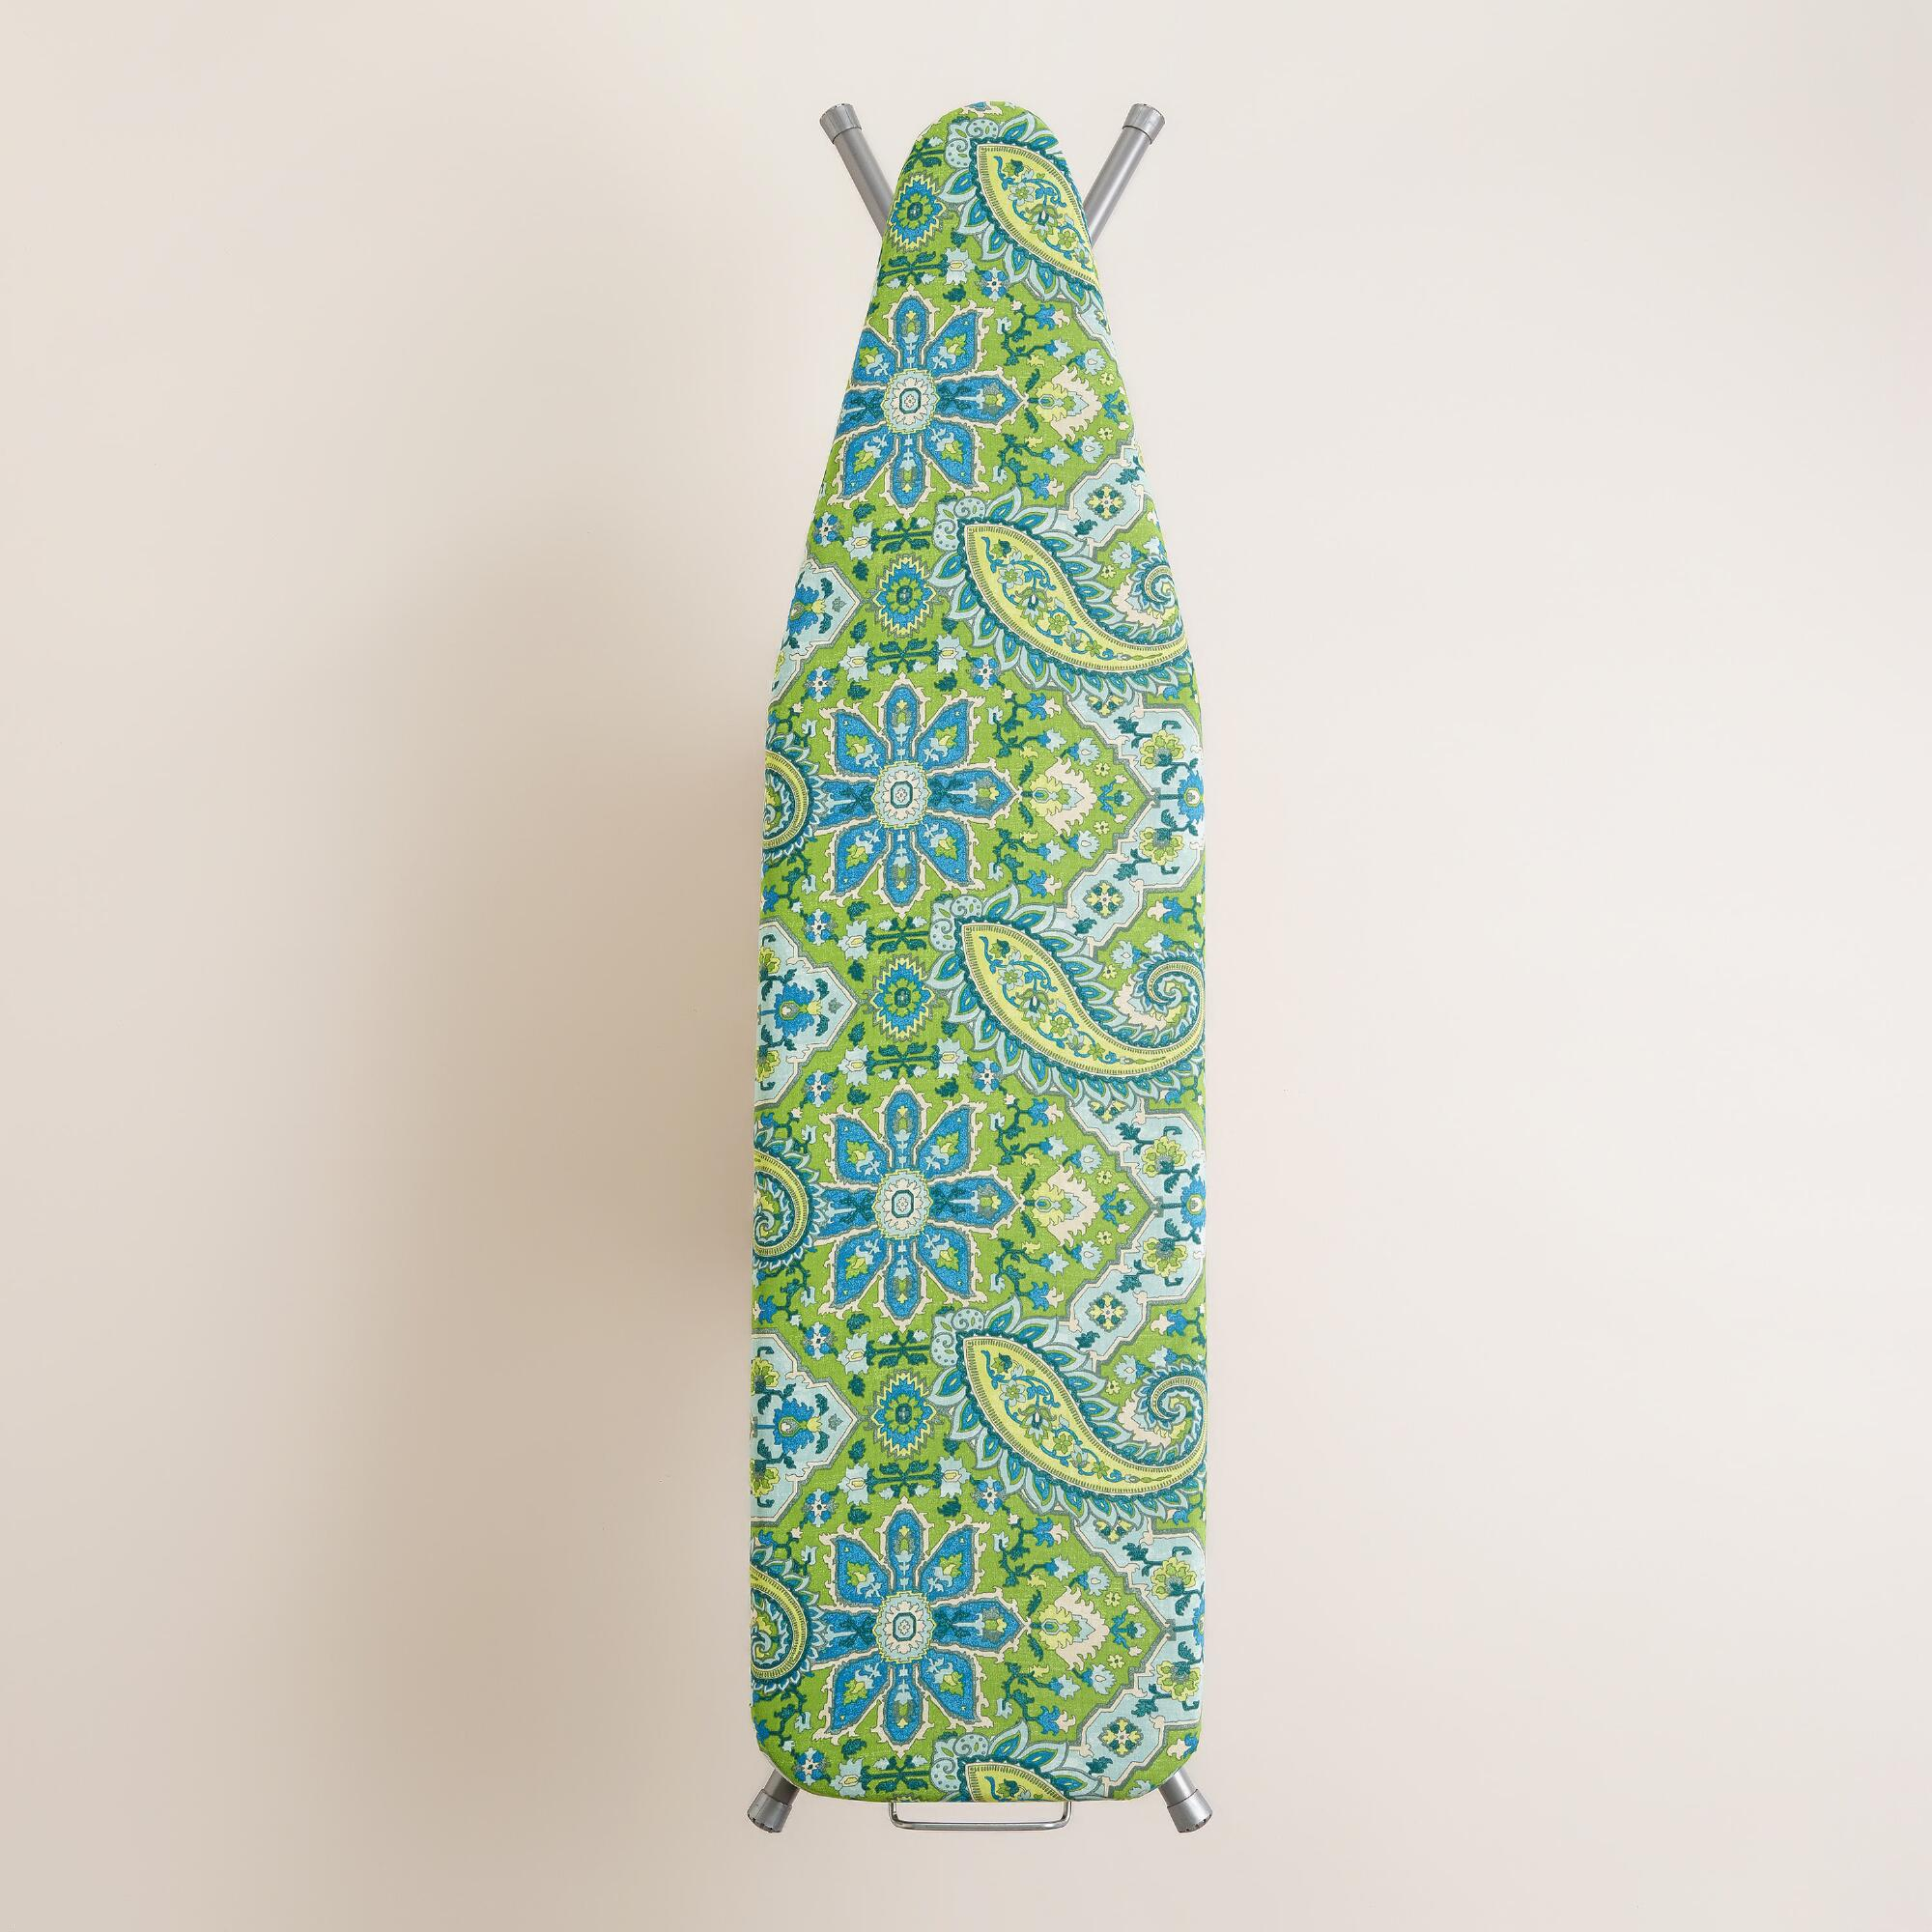 man ironing board cover images